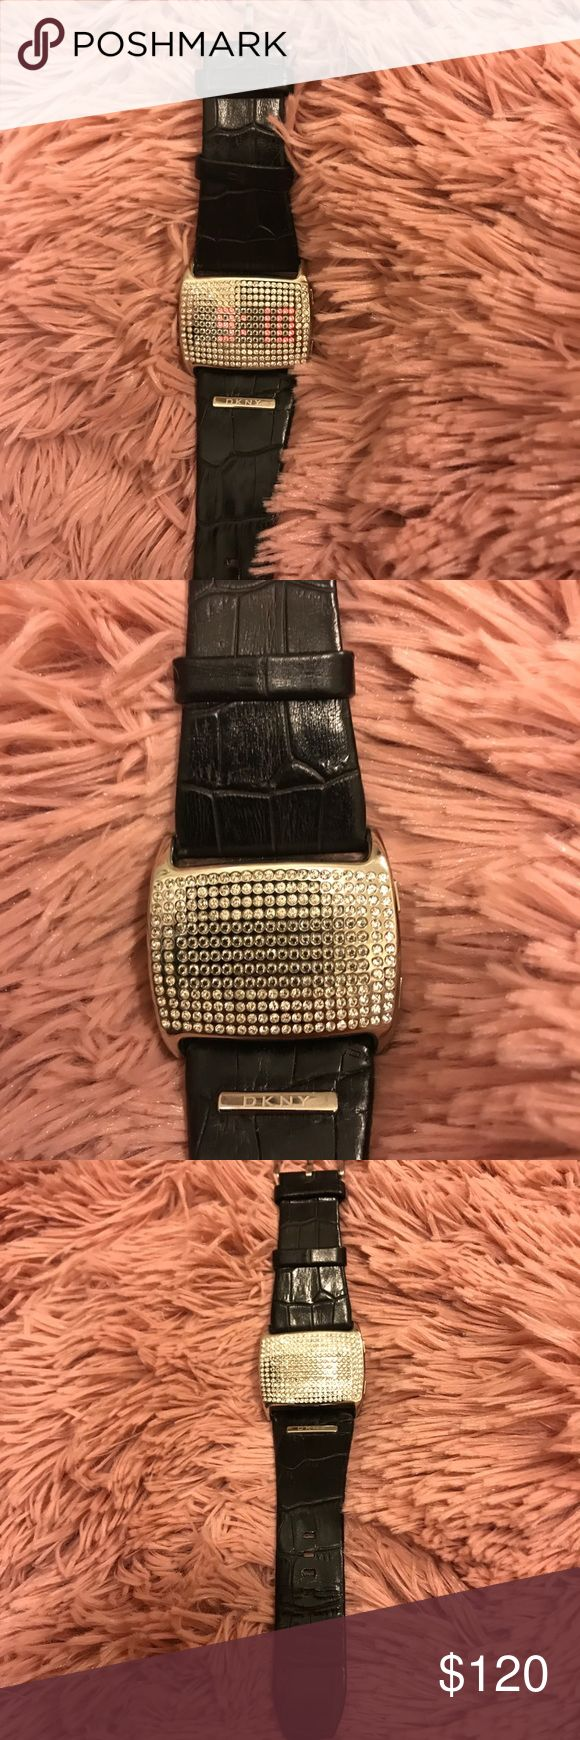 DKNY leather and crystal watch Very unique DKNY crystal watch with black leather gator embossed band. Time and date show through crystals on face when date/time button is pushed on side of watch. This is piece is gorgeous with some additional arm candy. Stack some sparkly bracelets and wear it dressed up or down. Worn only a couple times. Some scuffs or marks maybe present, but no Major damage was found when looking over watch. No missing crystals, this watch is amazing!! don't miss out and…